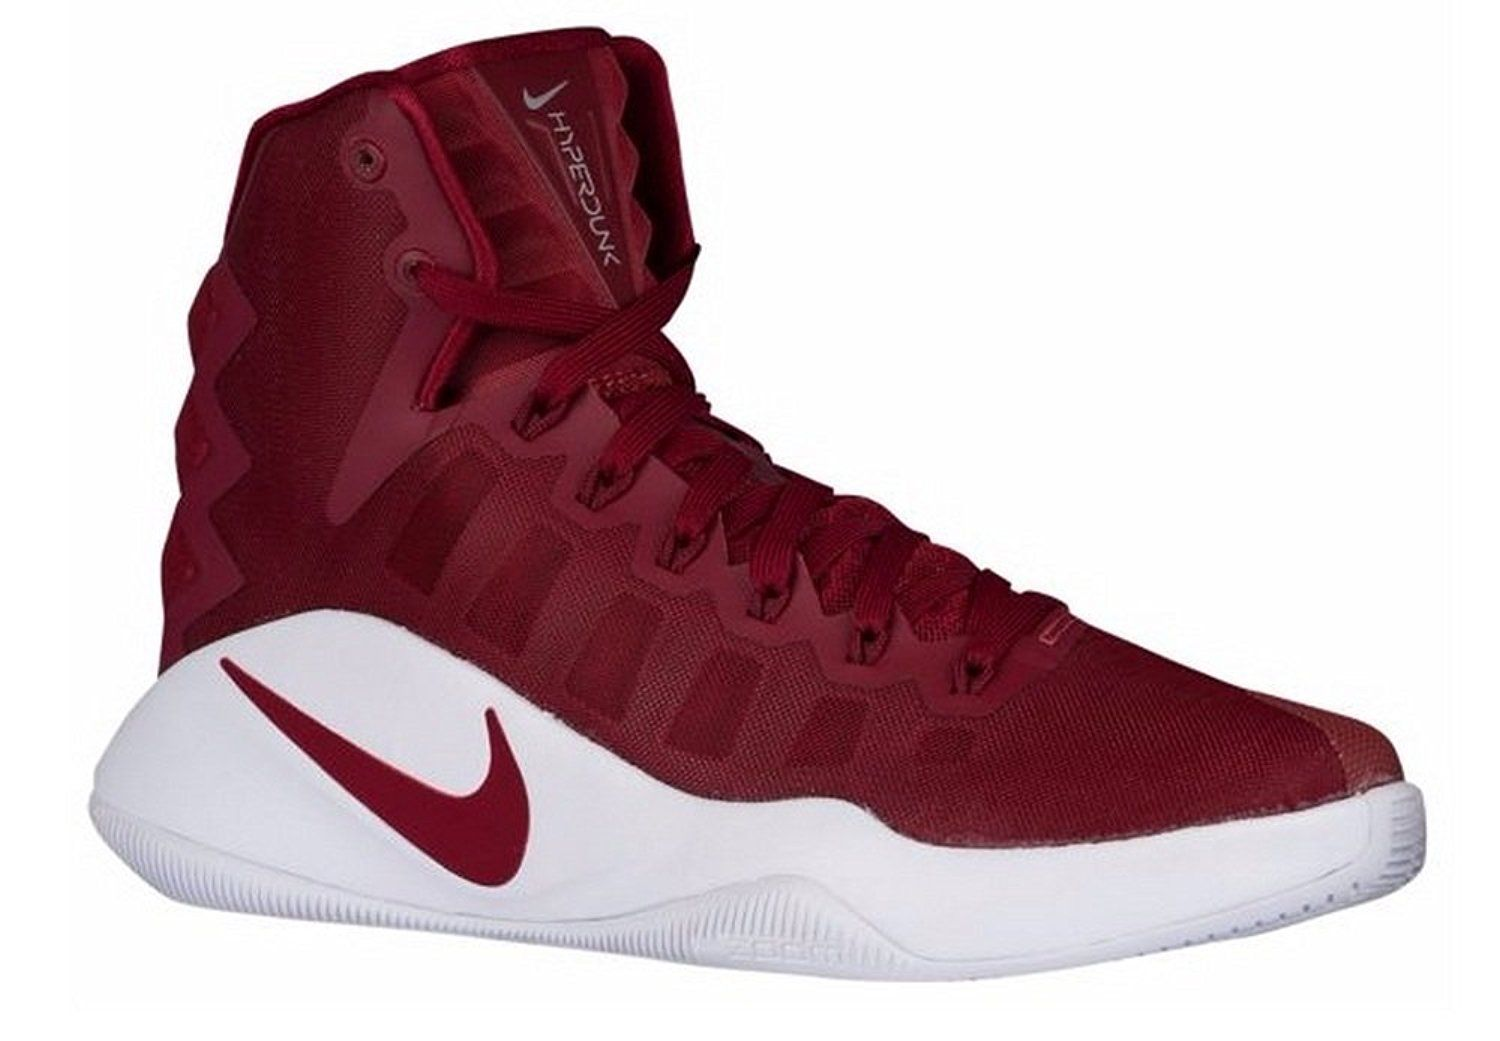 c4ea39f672d0 Women s Nike Hyperdunk 2016 TB Basketball Shoes Maroon 844391 661 Size 9      Quickly view this special product